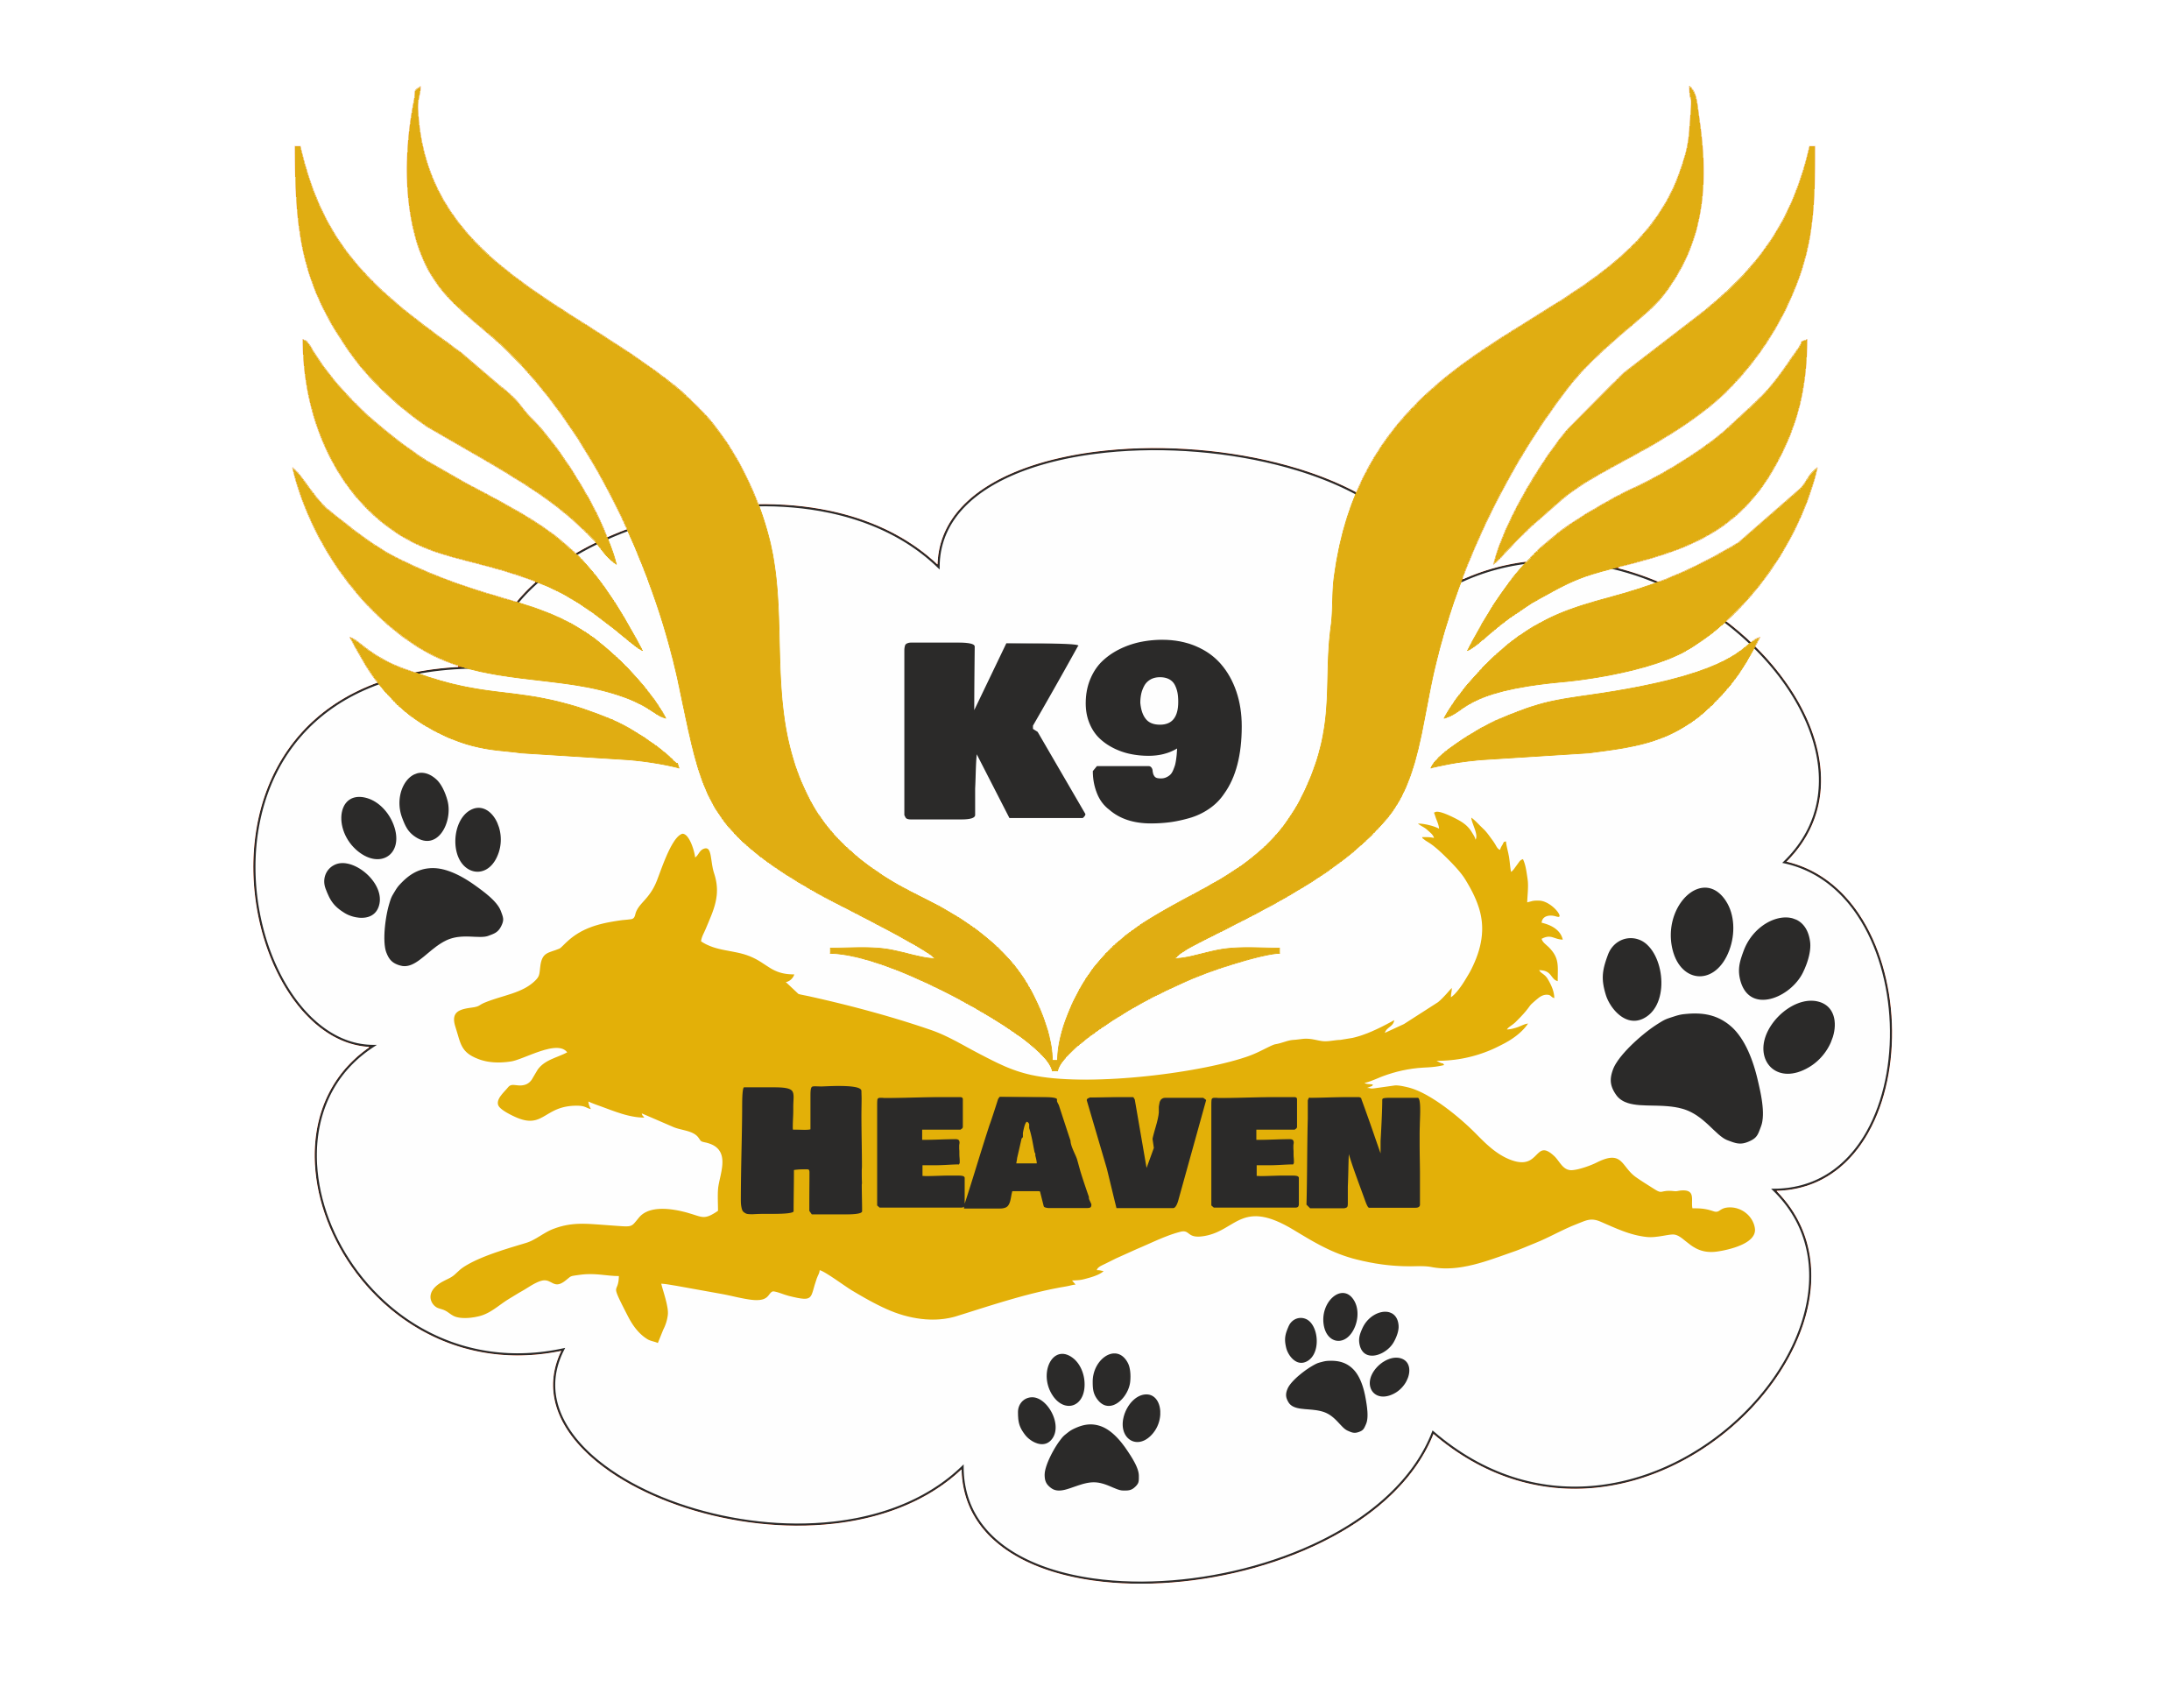 K9 Heaven Bristol | Dog and Puppy Training Classes Bristol